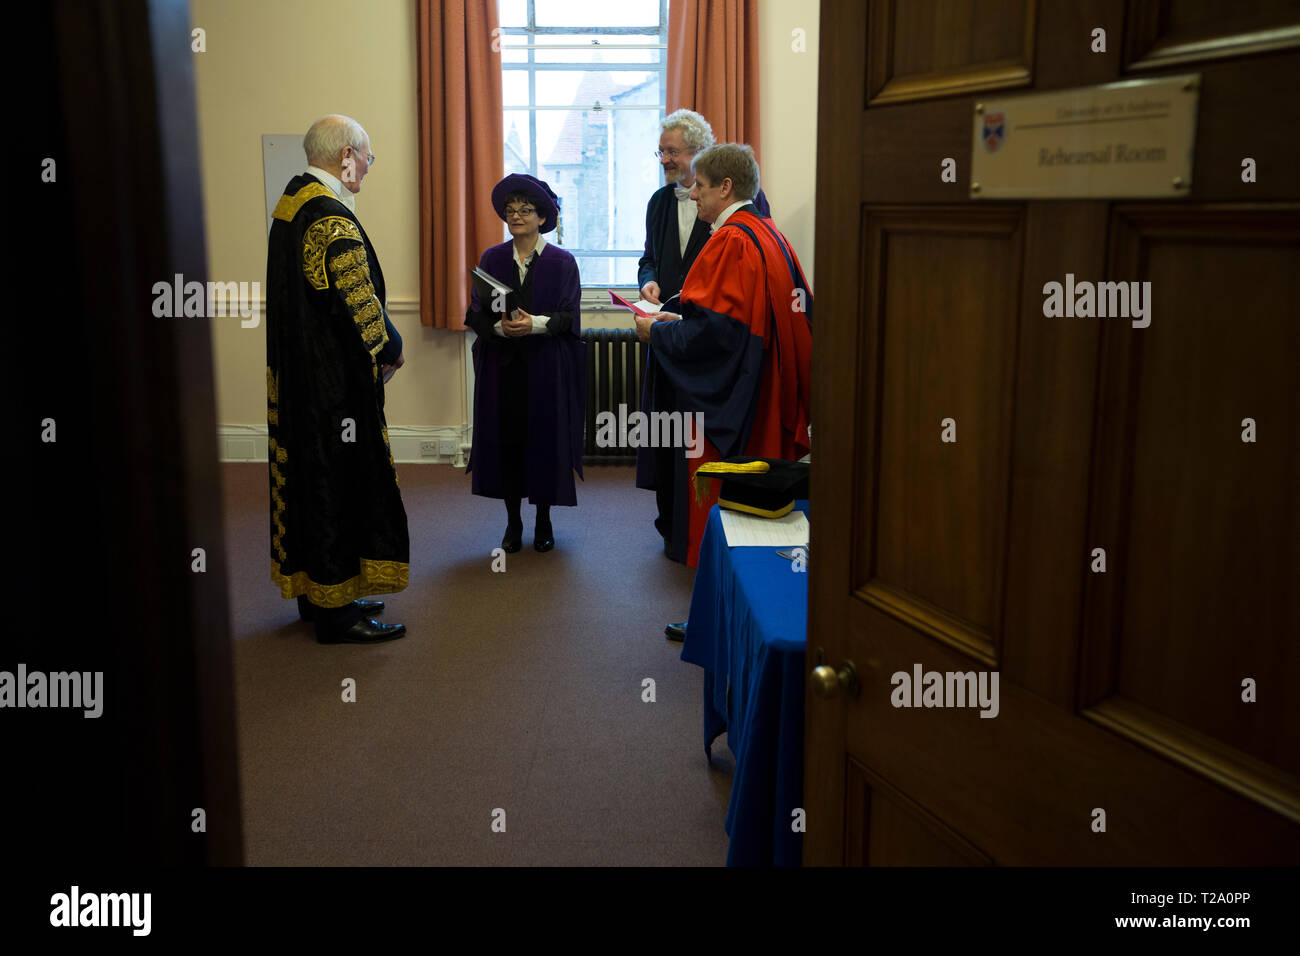 Professor Sally Capstone, Principal and Sir Menzies Campbell, Chancellor in the robing room at the Younger Hall at the University of St. Andrews, on graduation day, 30th November, 2016. - Stock Image